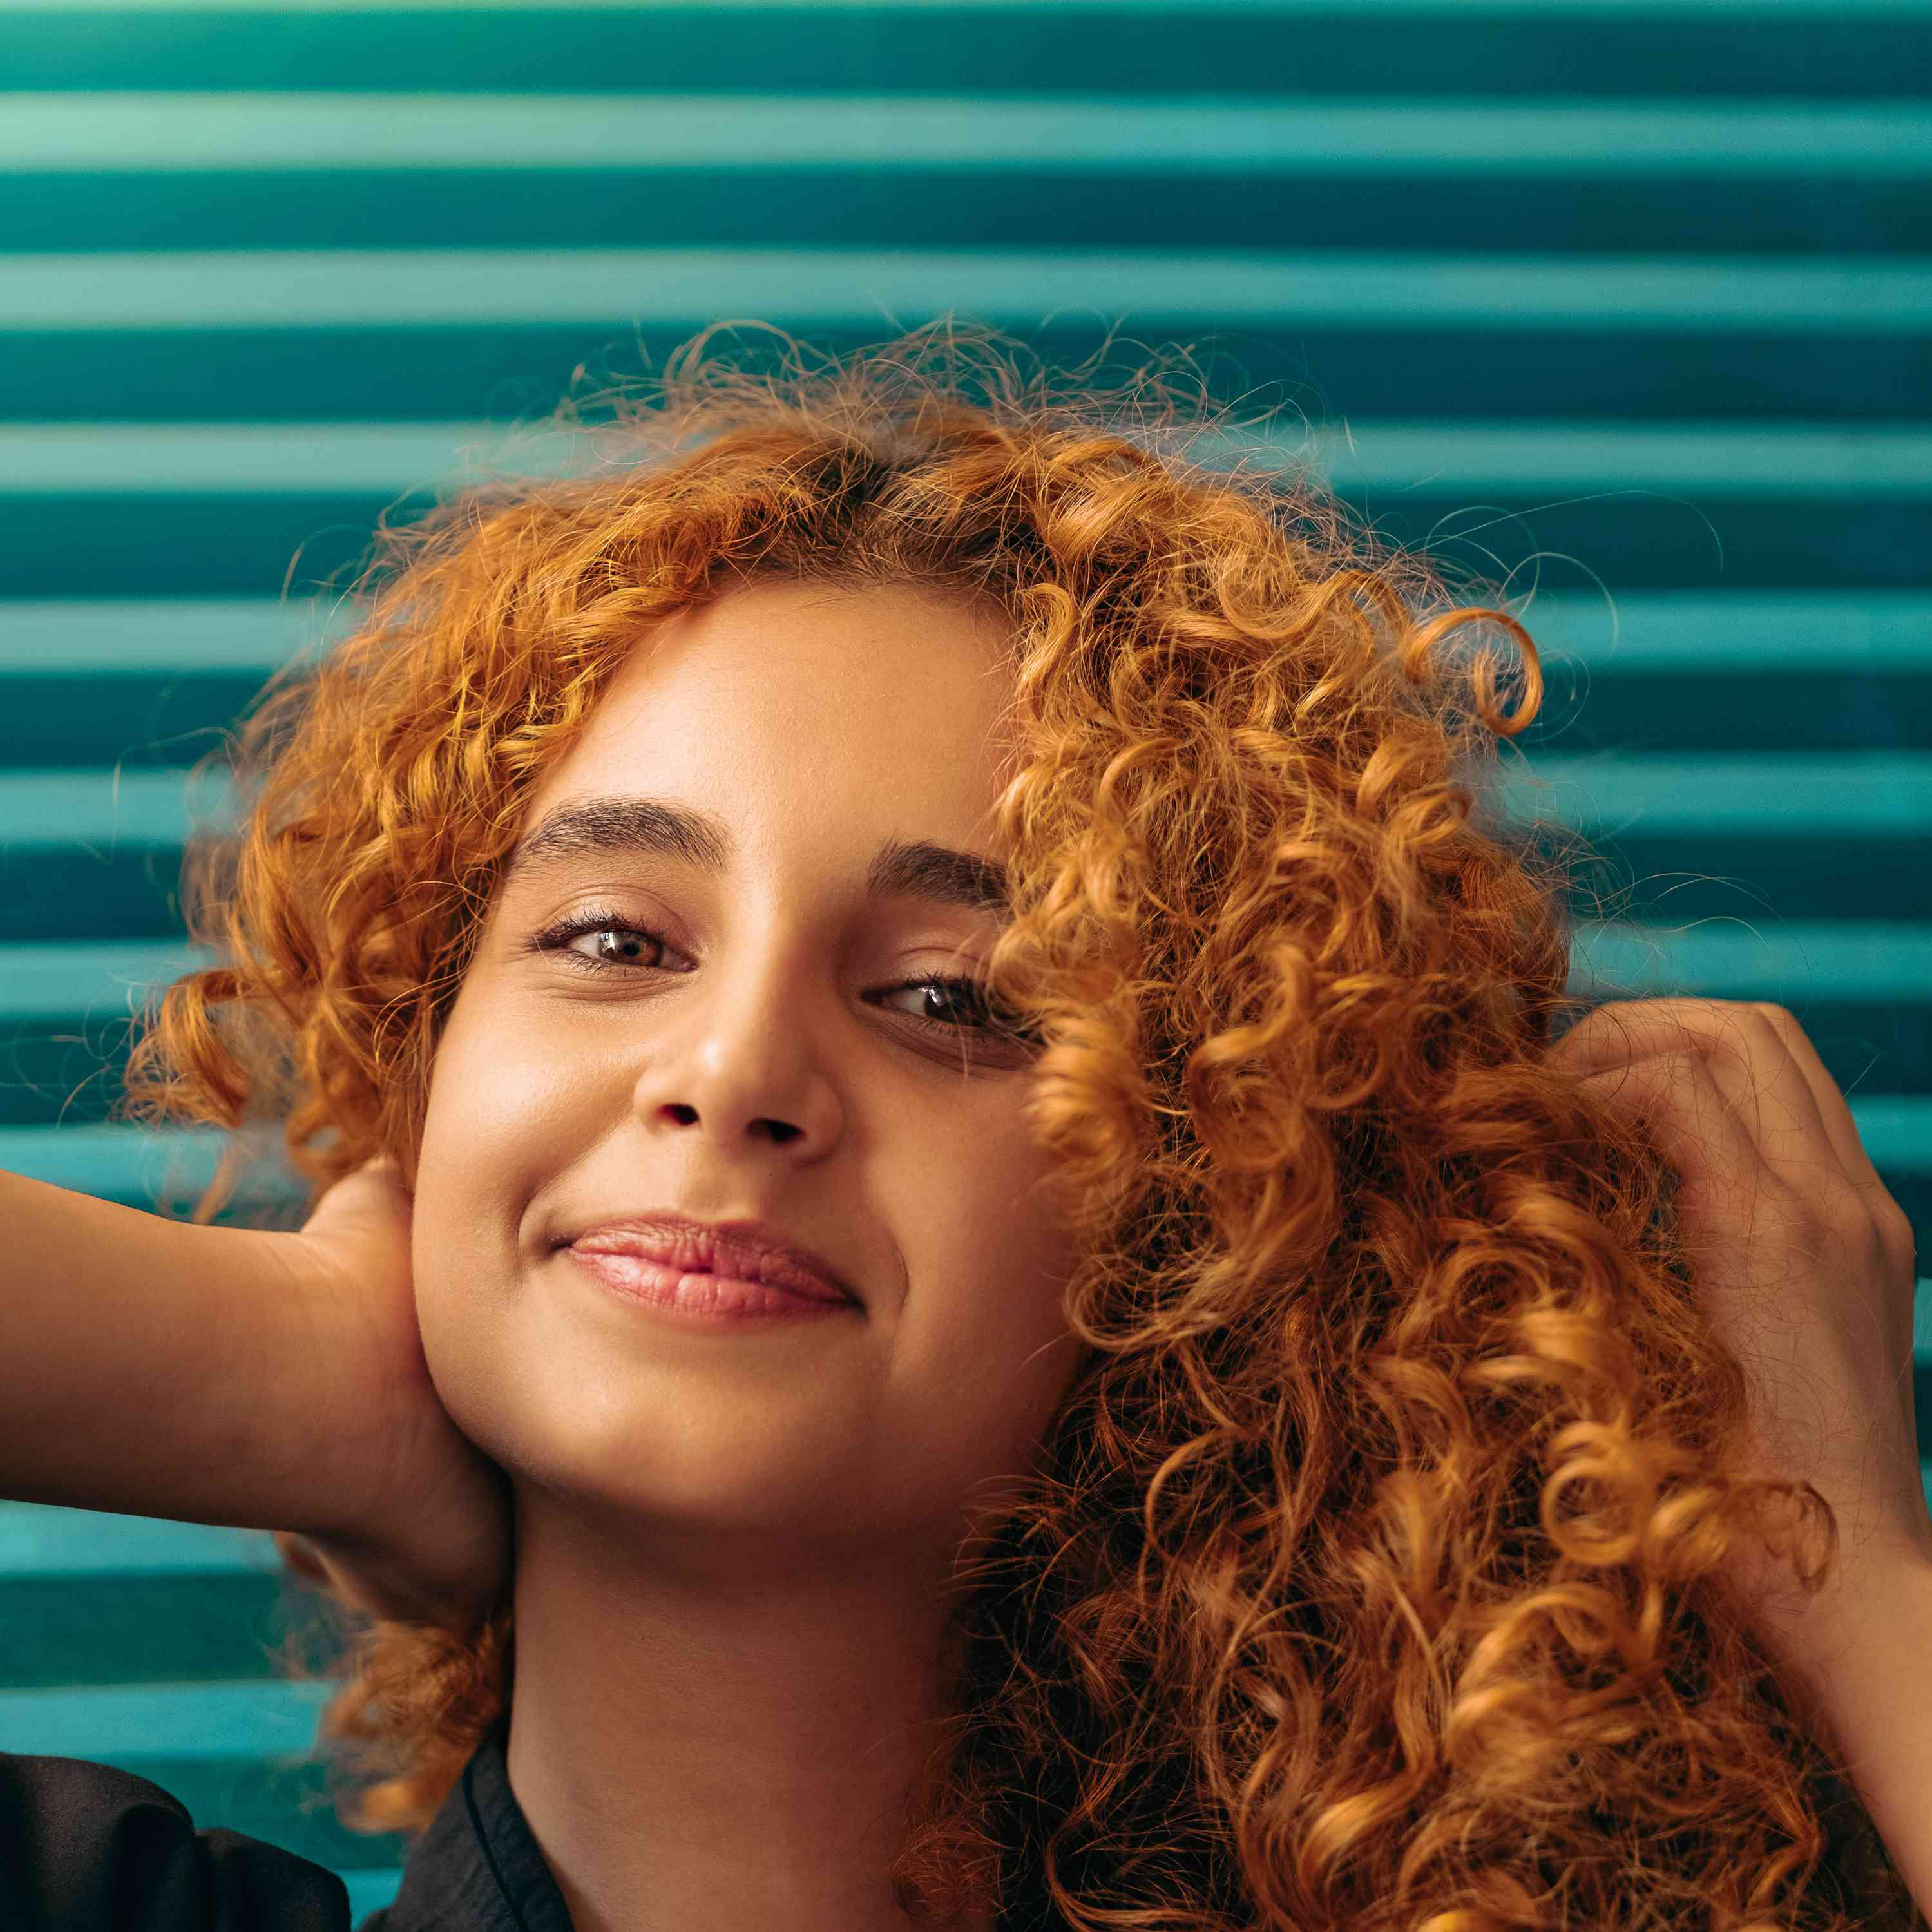 woman with curly red hair